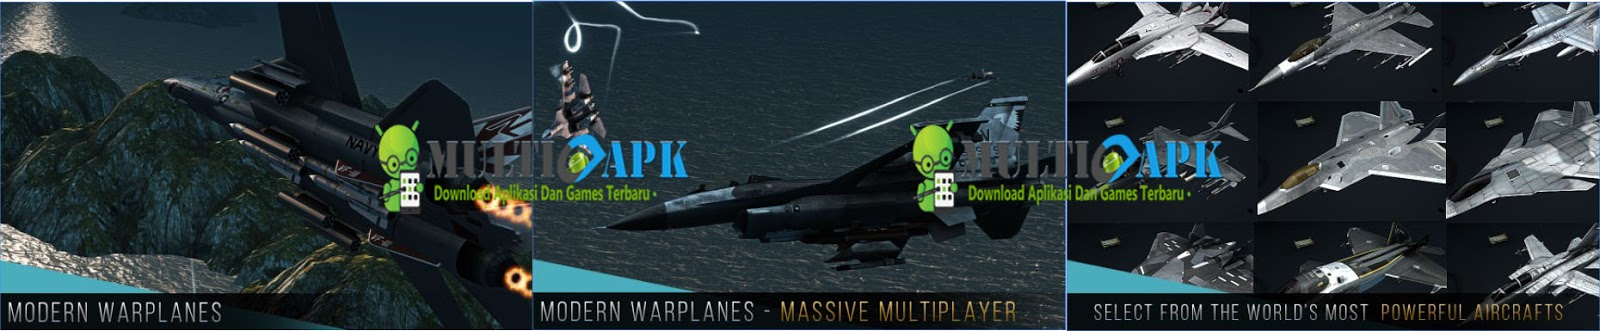 Modern Warplanes Apk Mod 1.5 Free Shopping